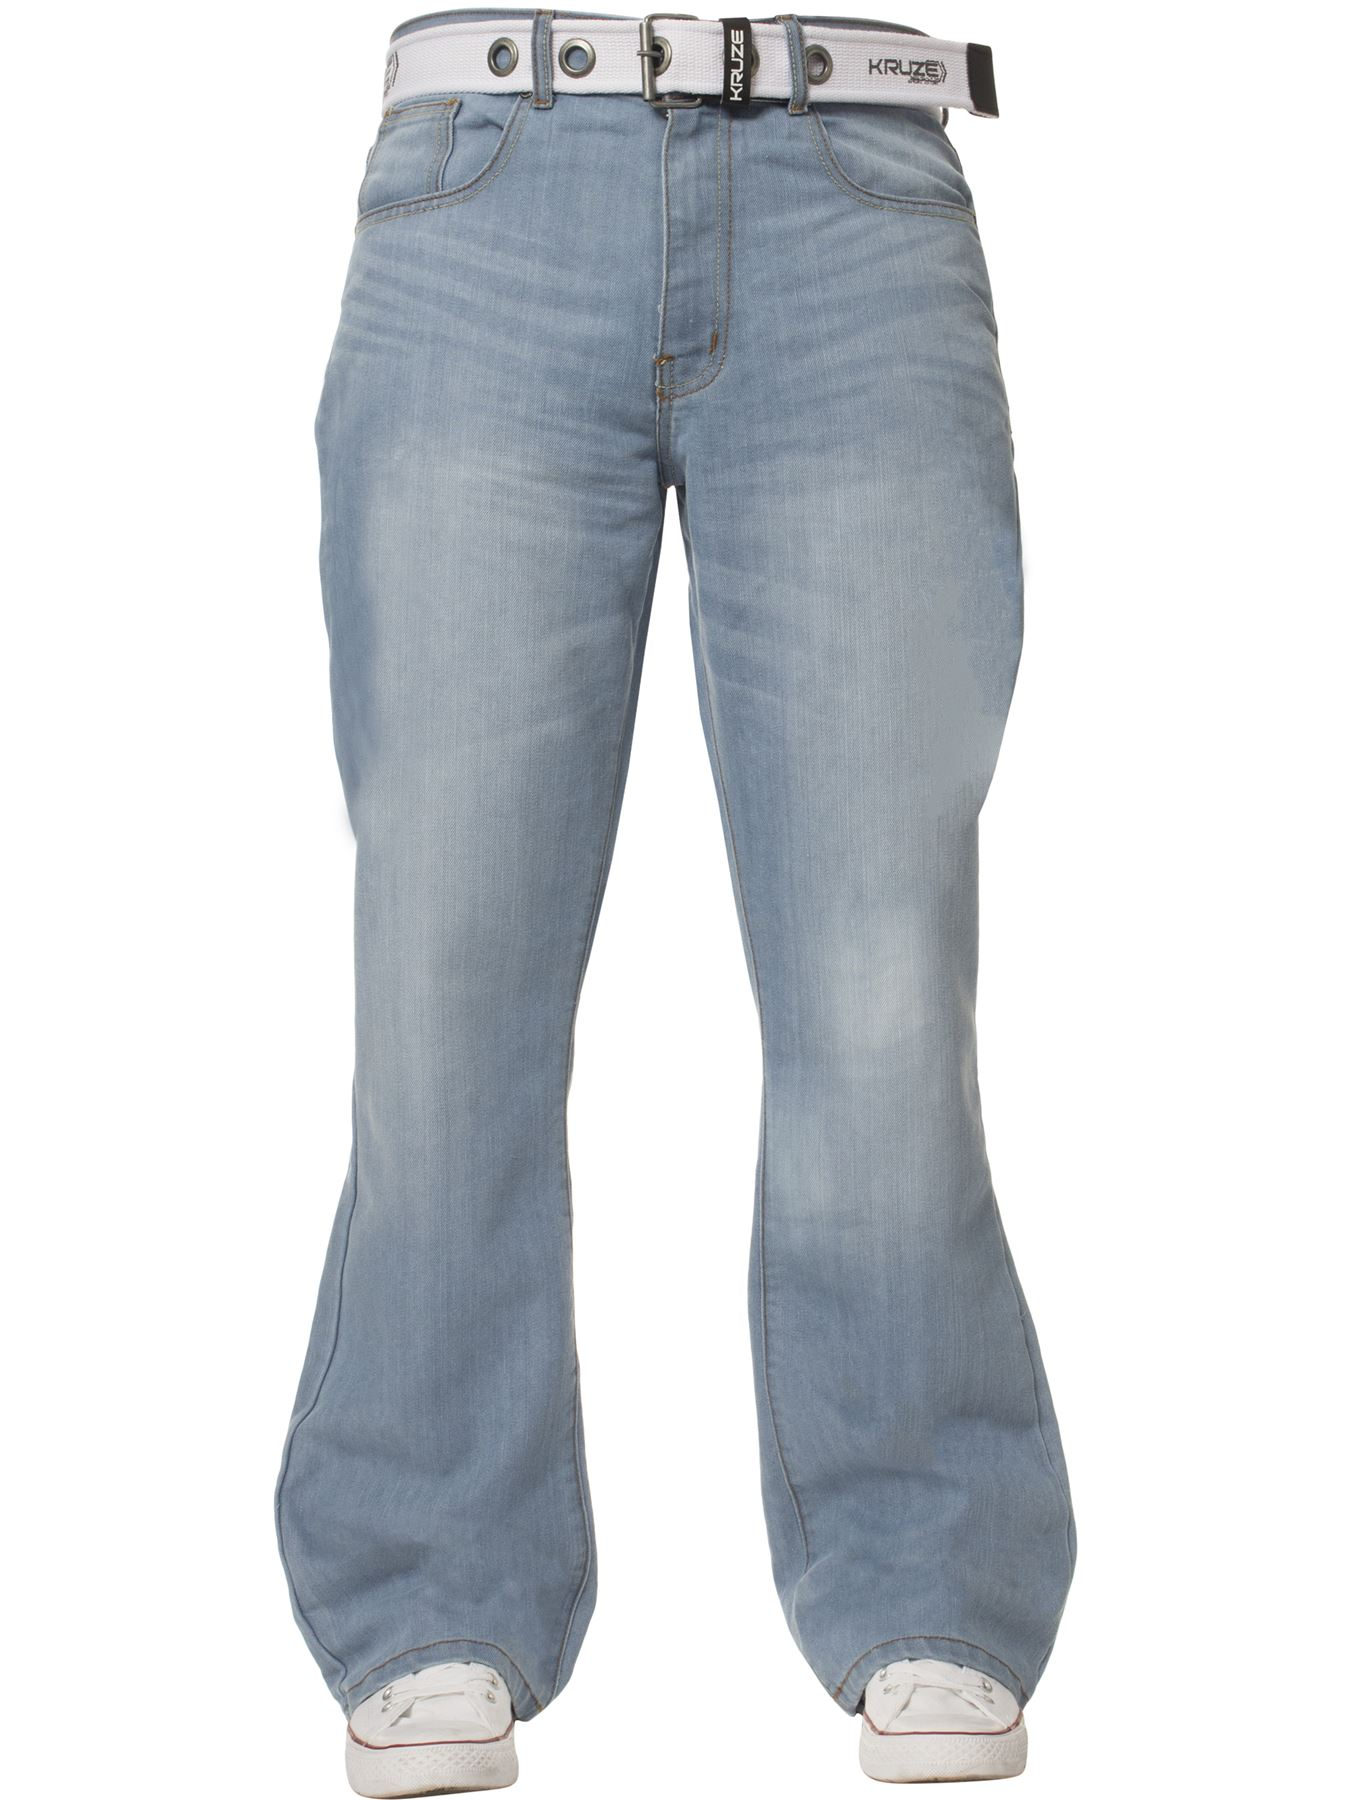 Kruze-Denim-New-Mens-Bootcut-Jeans-Wide-Leg-Flare-Pants-King-Big-All-Waist-Sizes thumbnail 18